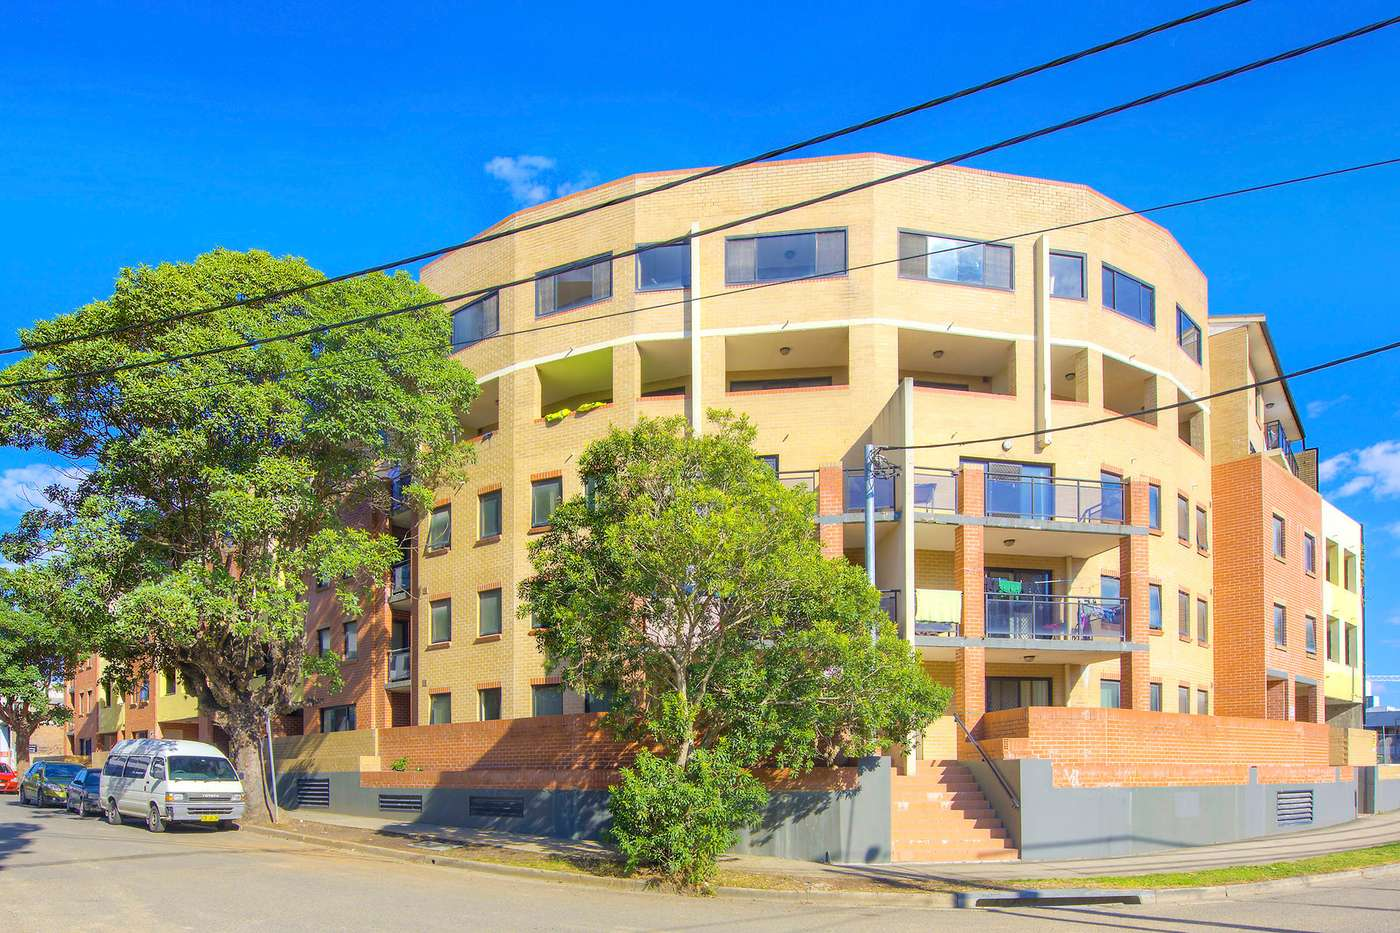 Main view of Homely unit listing, 41/2-10 Powell Street, Homebush, NSW 2140